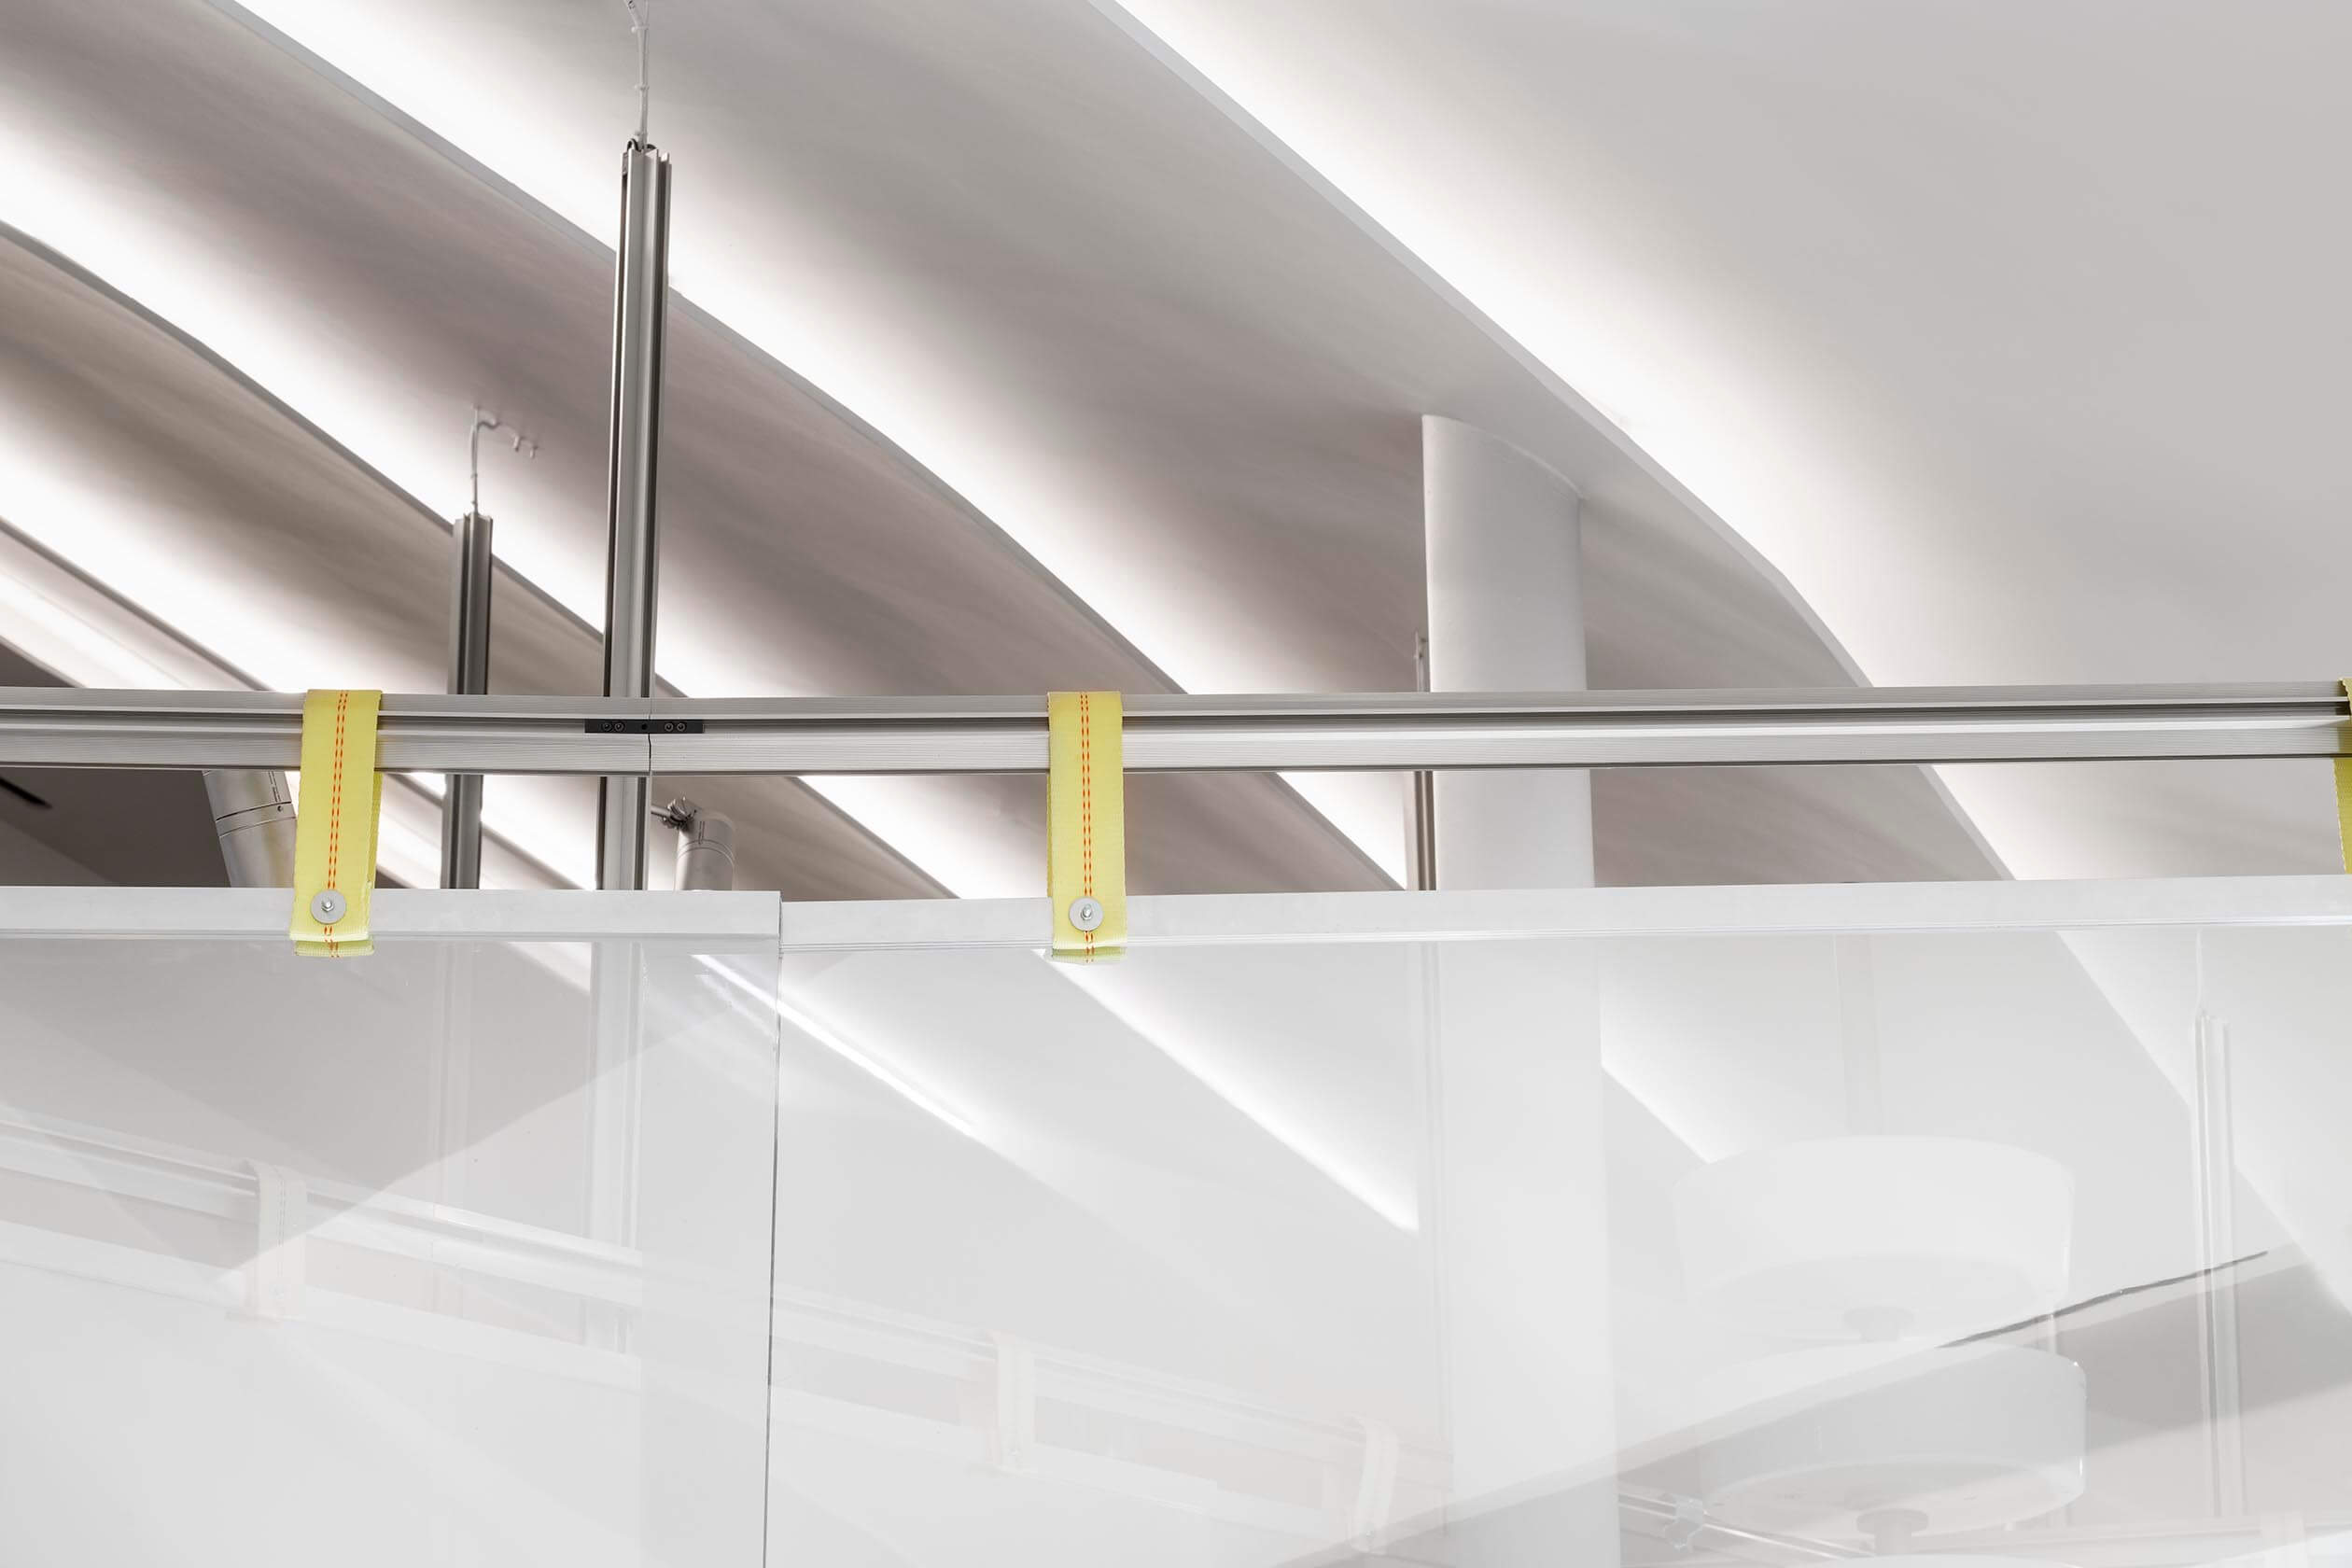 Detail of light installation system that allows the flexible hanging.